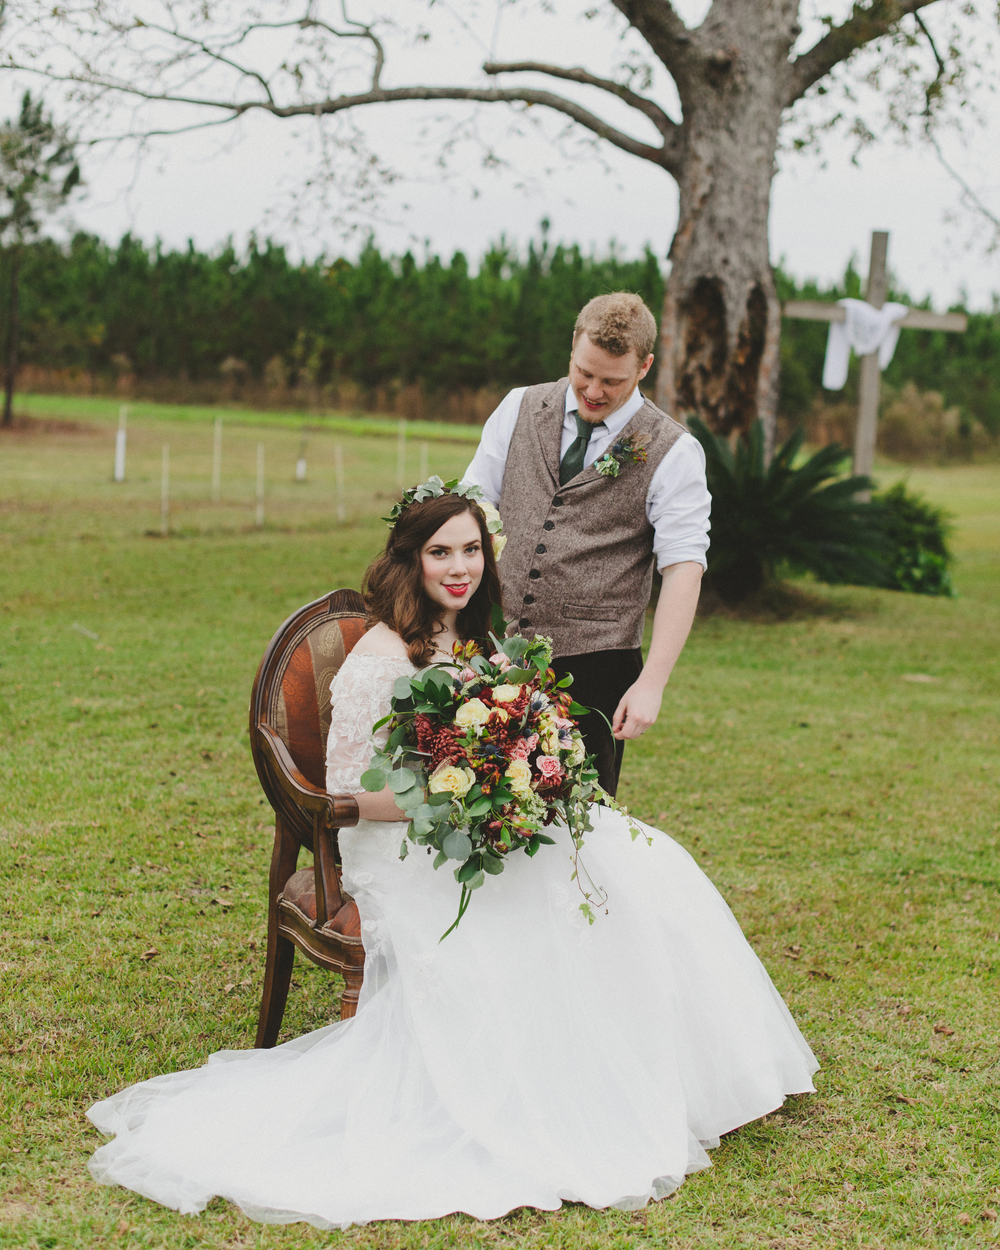 Ng-Photography-backyard-wedding-royal-hair-and-makeup-ivory-and-beau-wedding-planning-wedding-flowers-savannah-florist-savannah-flowers-savannah-weddings-savannah-wedding-savannah-event-planner-savannah-wedding-planner-savannah-rustic-wedding-26.jpg